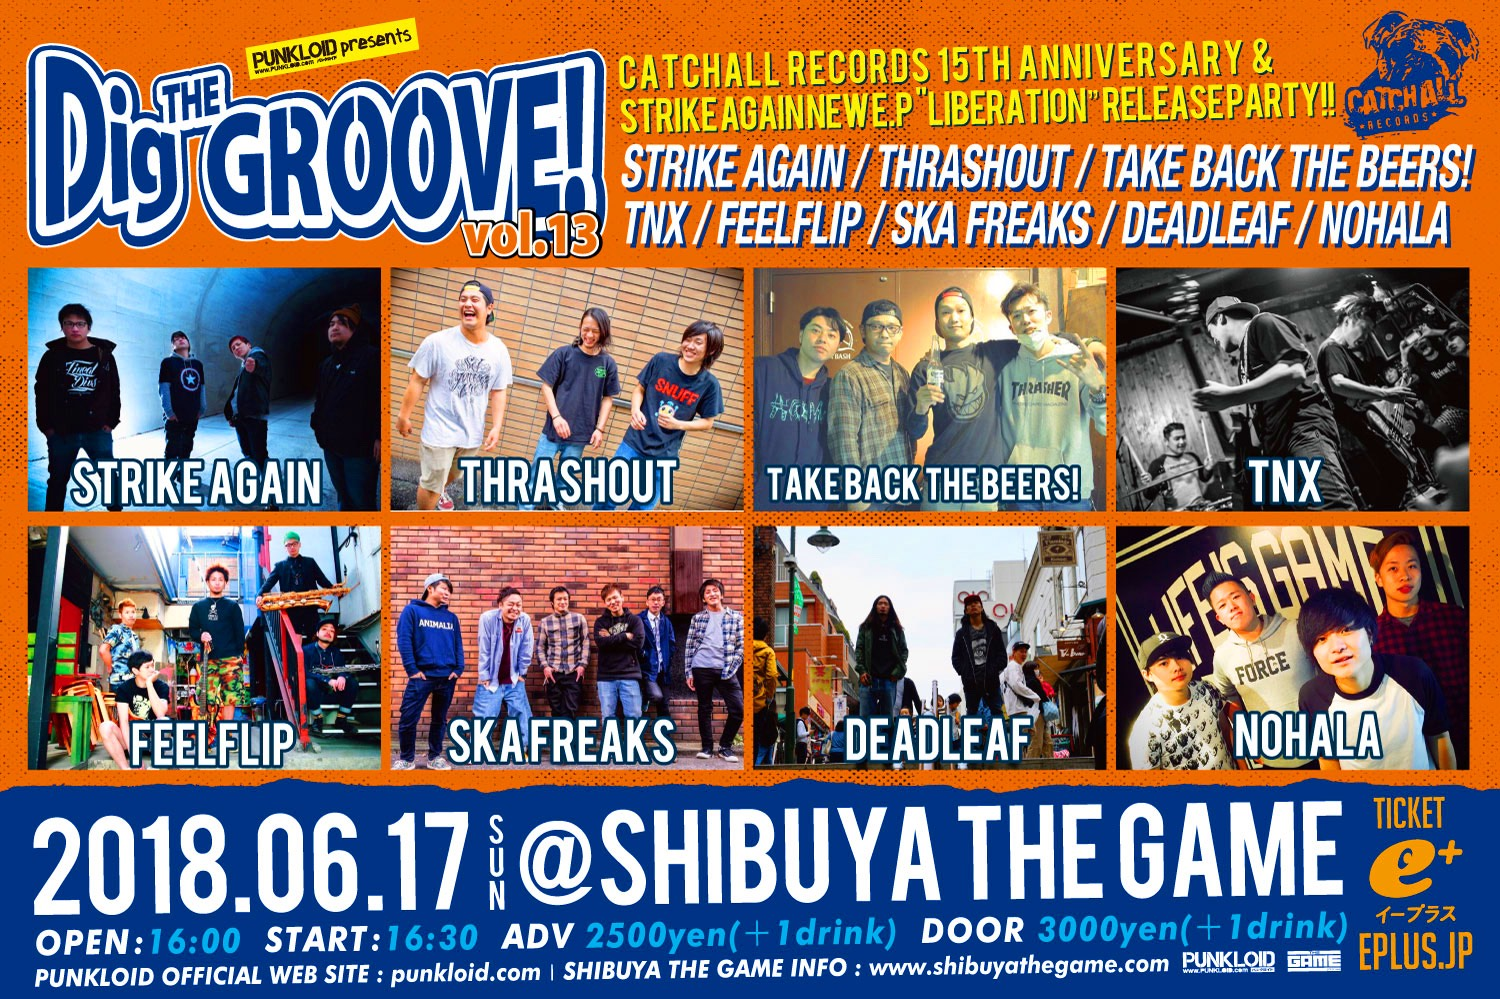 Dig THE GROOVE vol.13